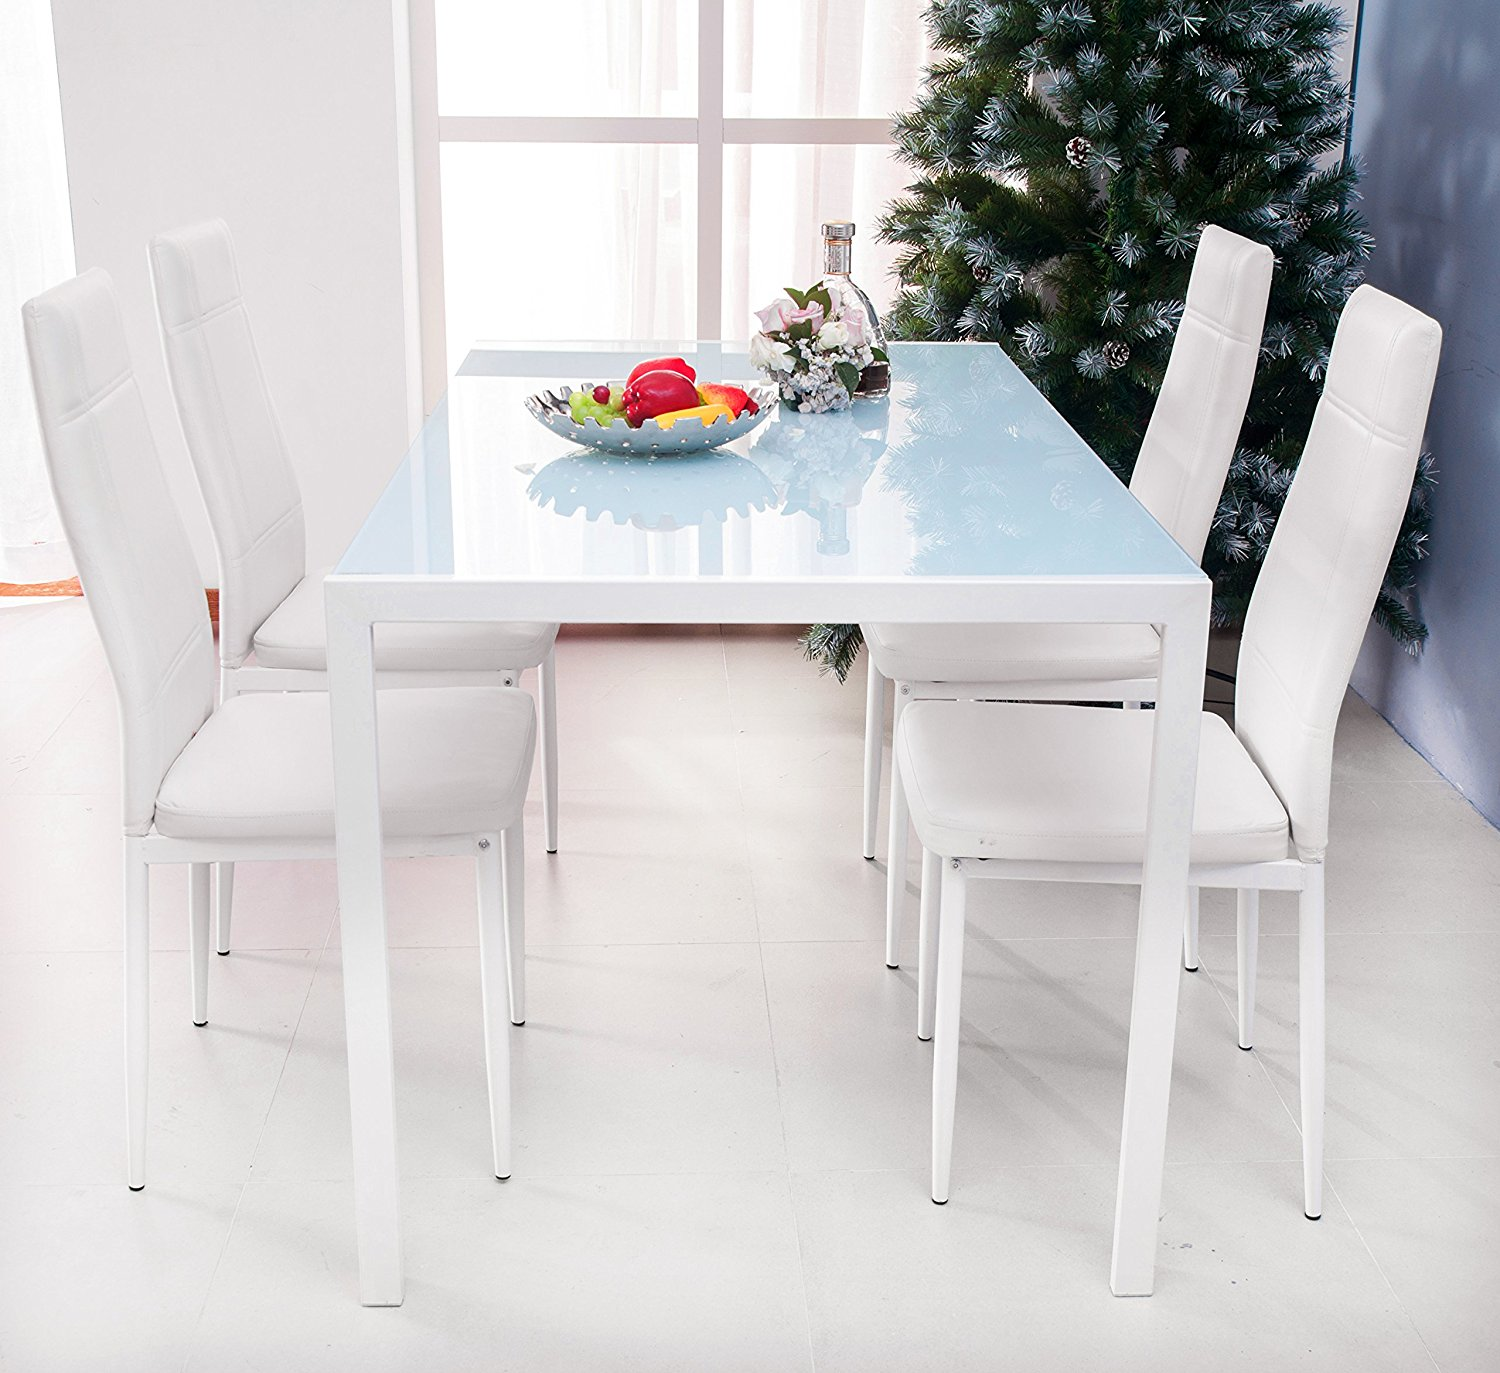 Merax 5-piece Dining Set Glass Top Metal Table 4 Person Table and Chairs (47 Inch, White)